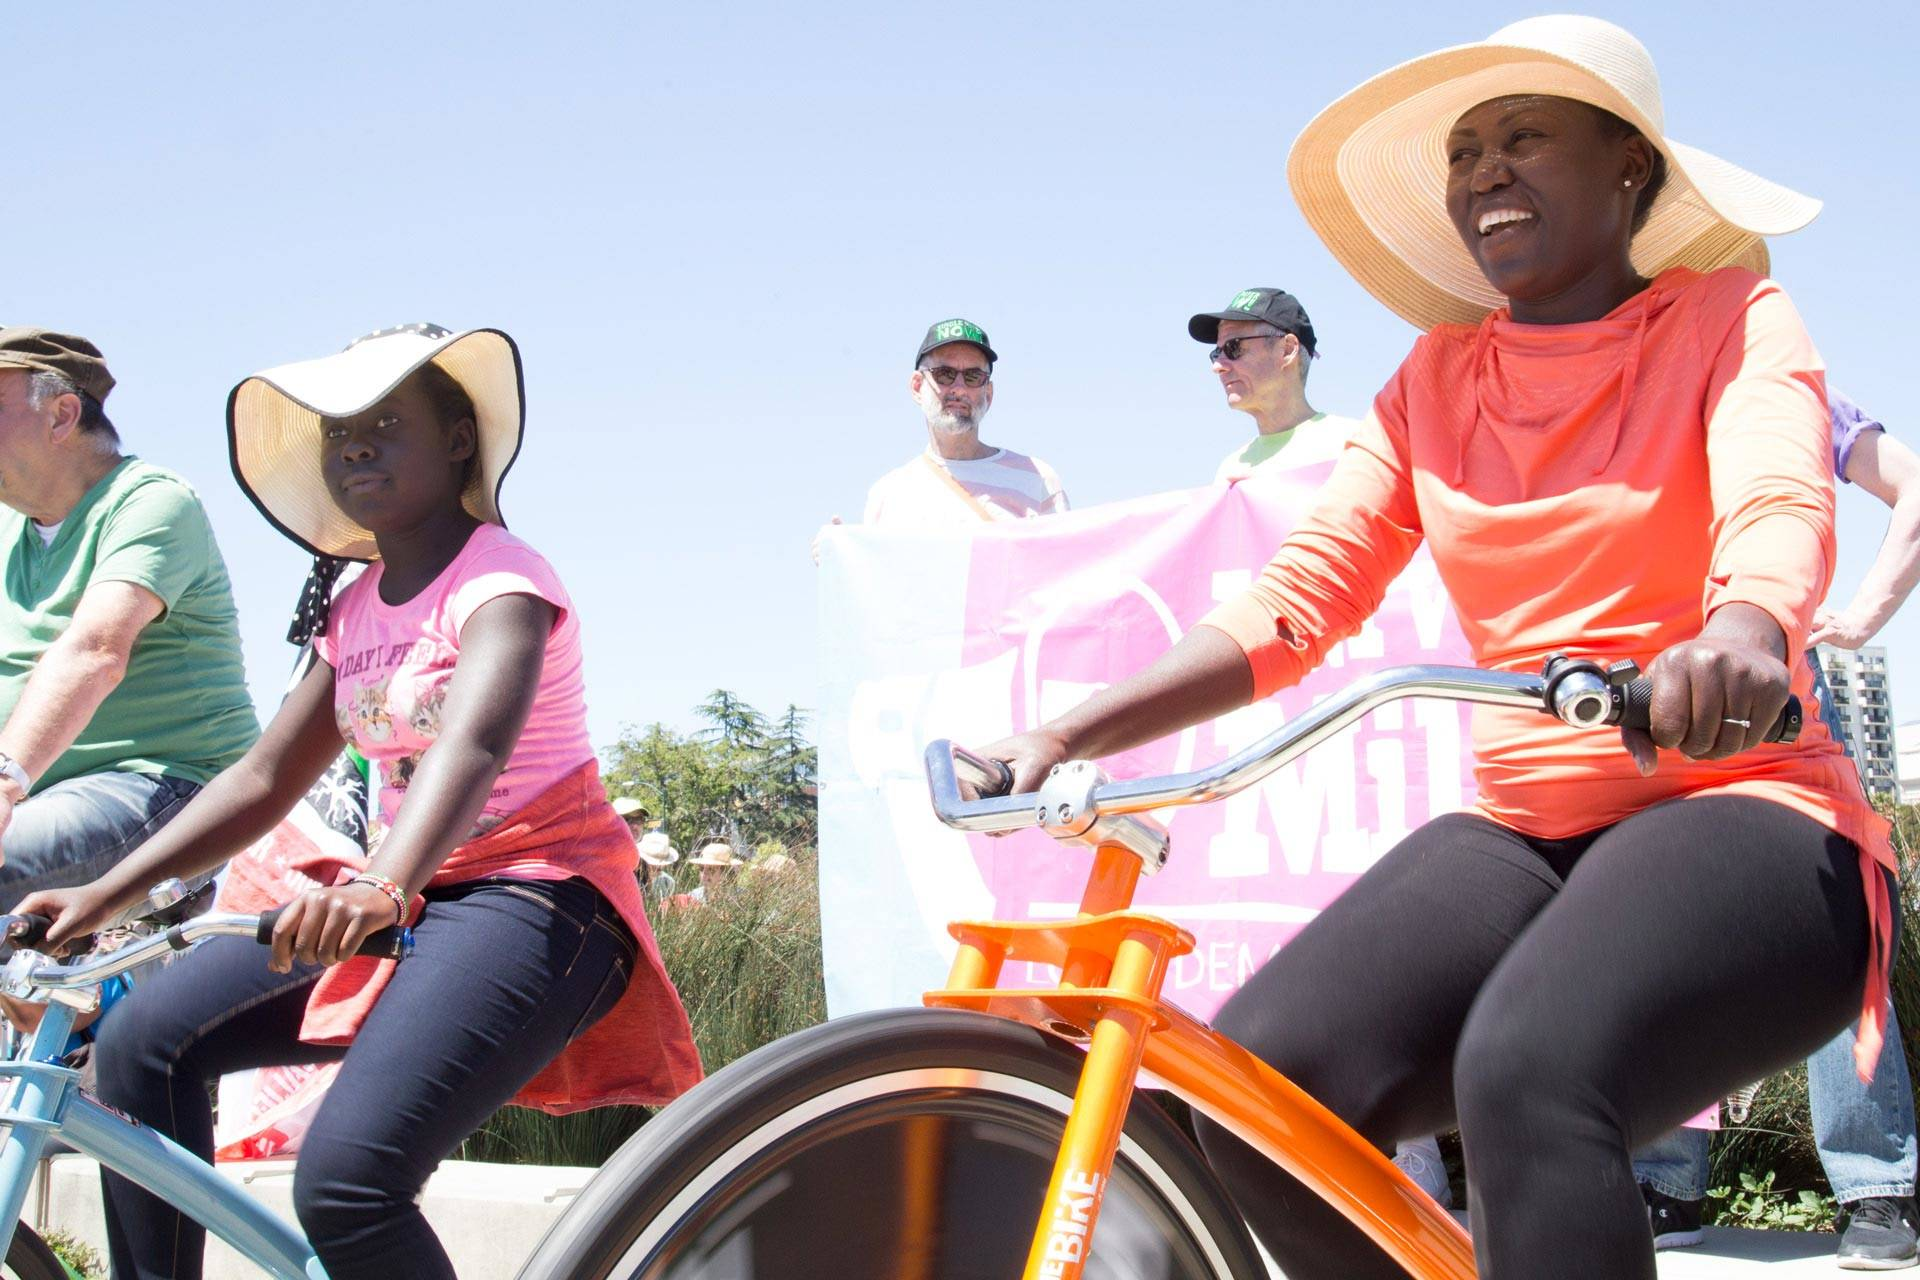 Edna Lehnert and her 10-year-old daughter generate pedal power at the People's Climate march in Oakland, April 29, 2017.